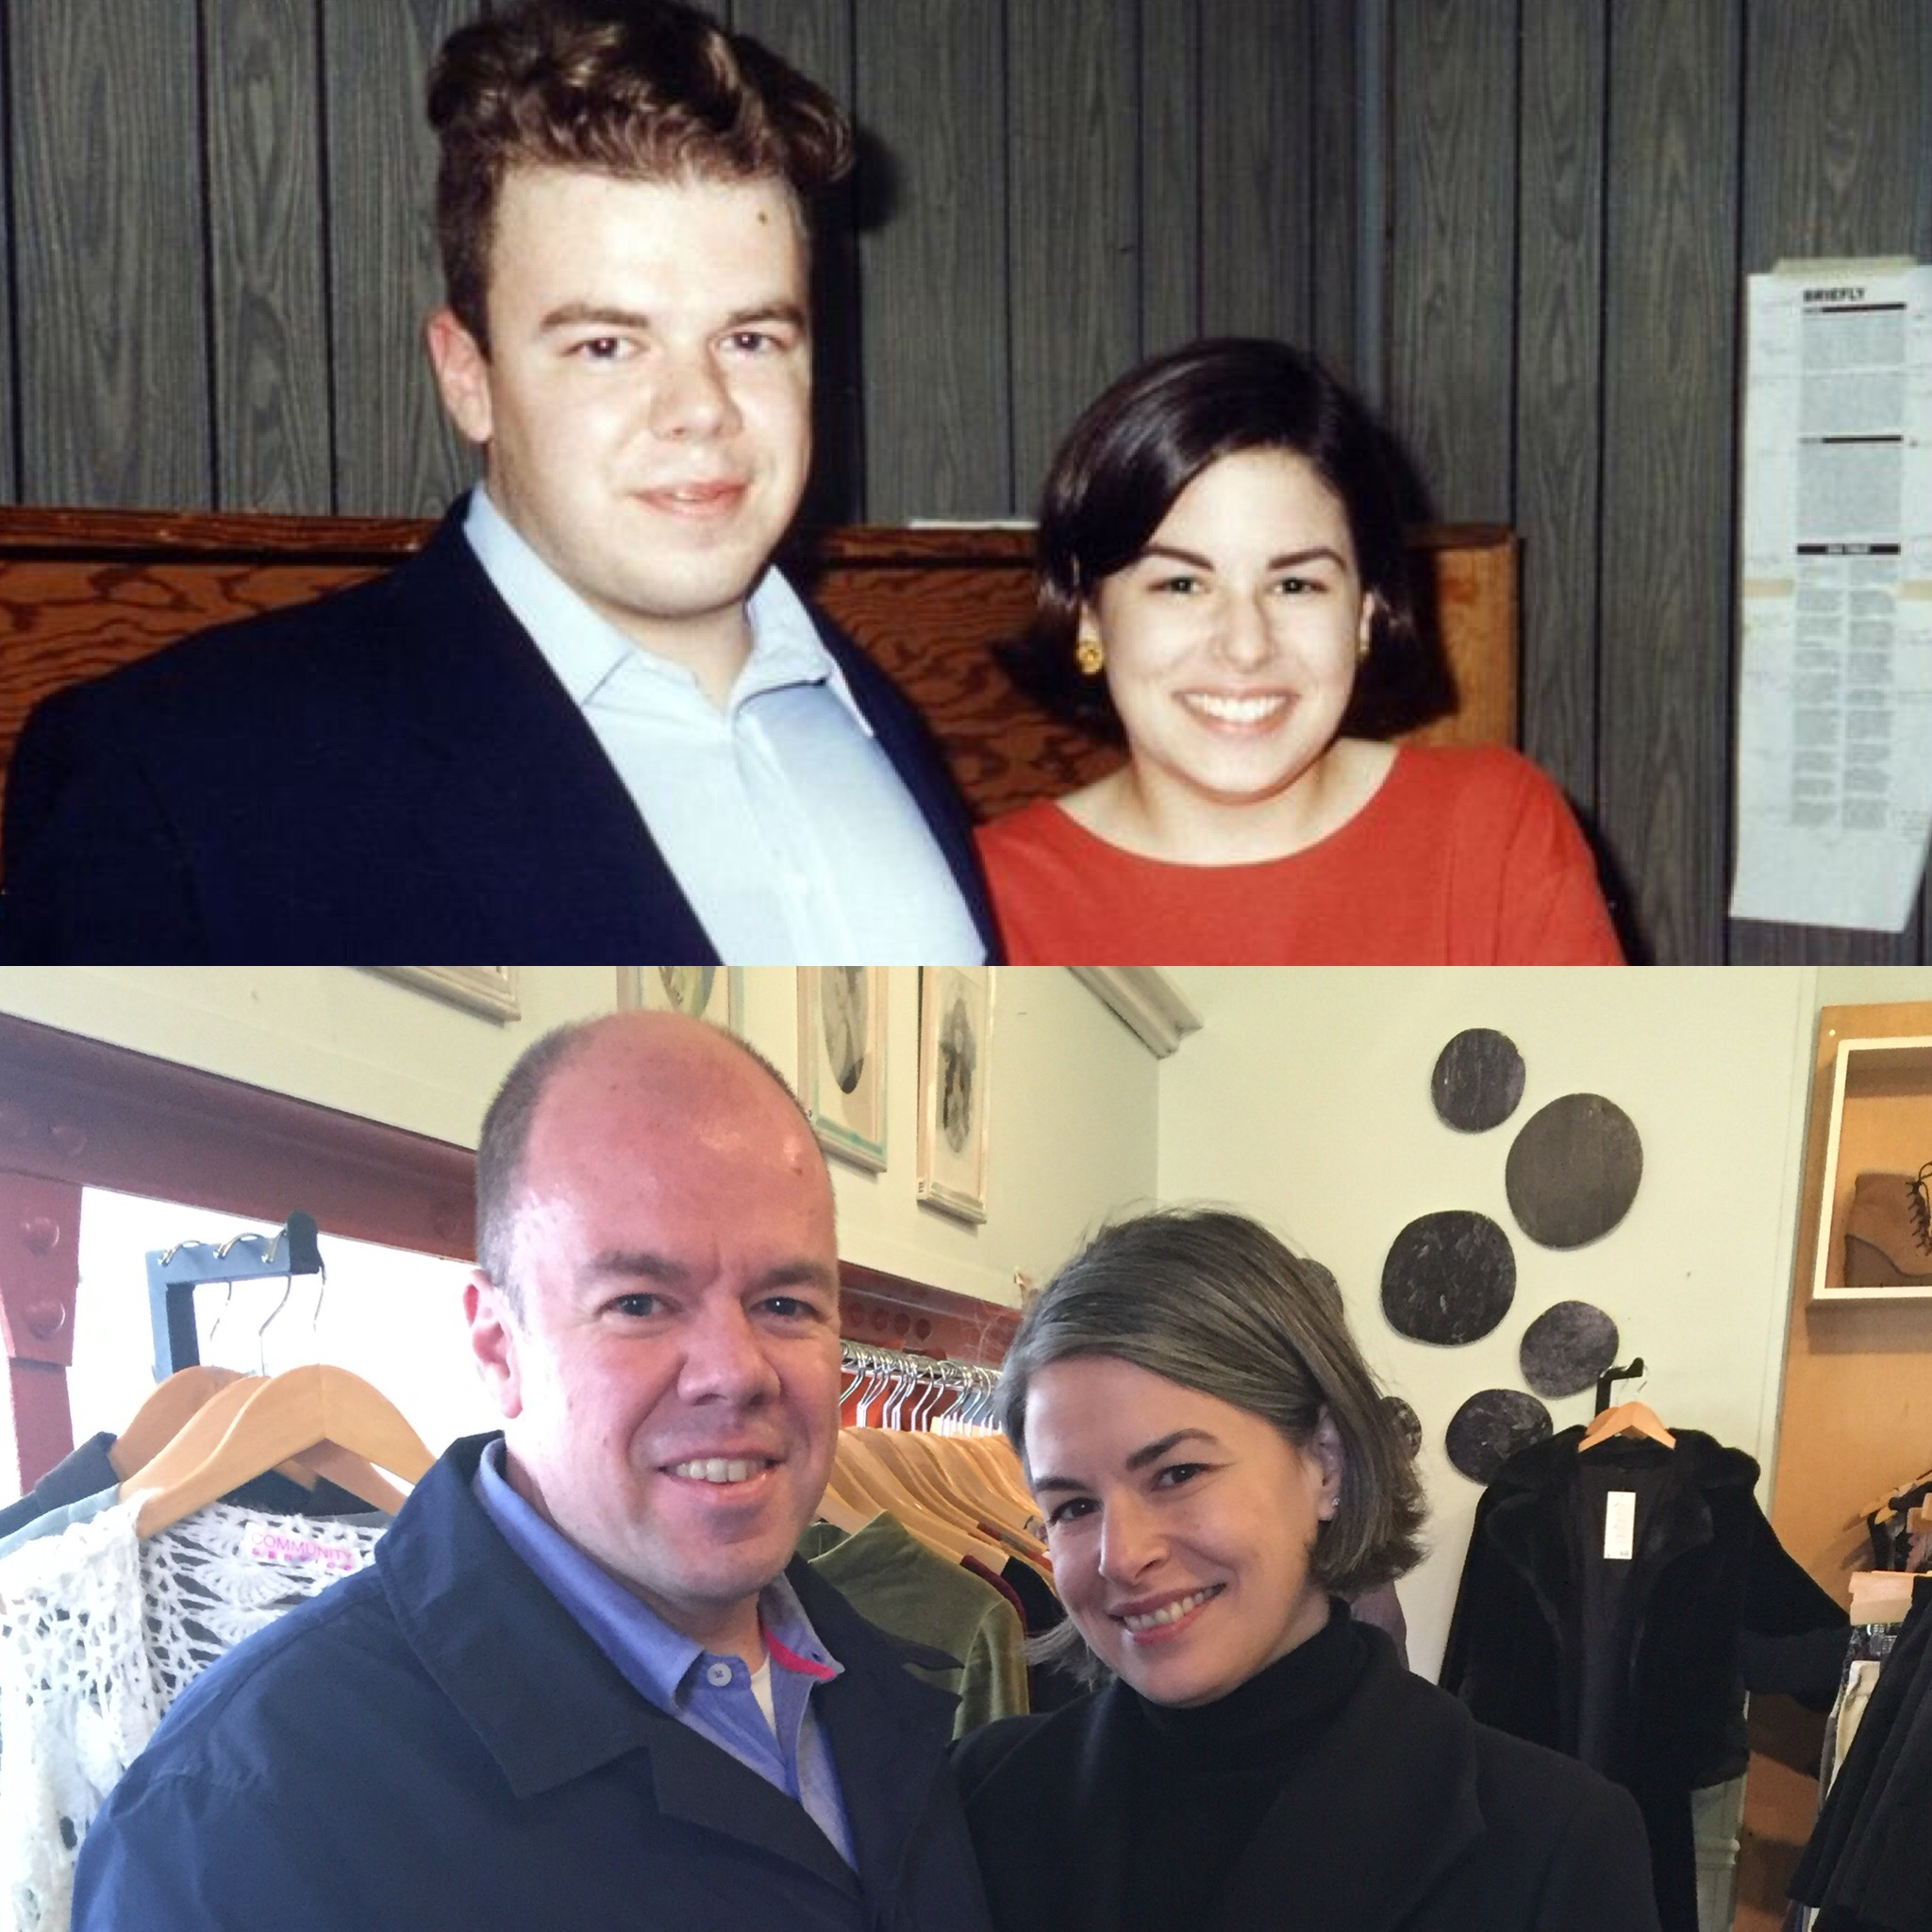 1994 and 2016 at the (now-former) office of the Red & Black, the student newspaper where we met.